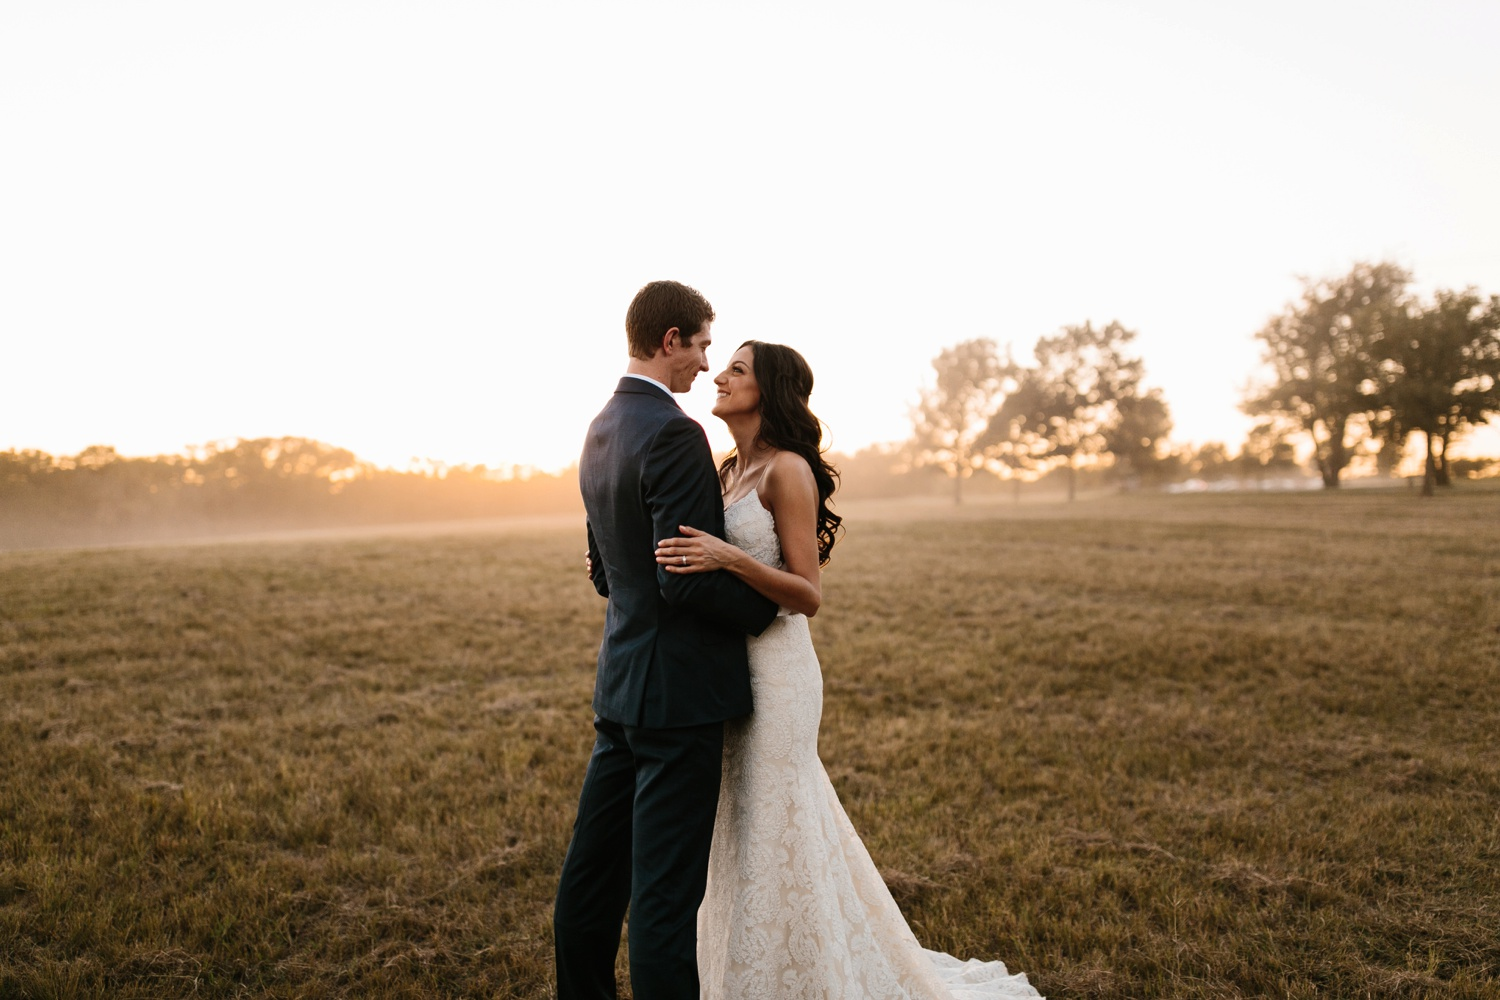 Erica + Henry | a bohemian inspired wedding at Chandlers Gardens in Salina, TX by North Texas Wedding Photographer Rachel Meagan Photography 106